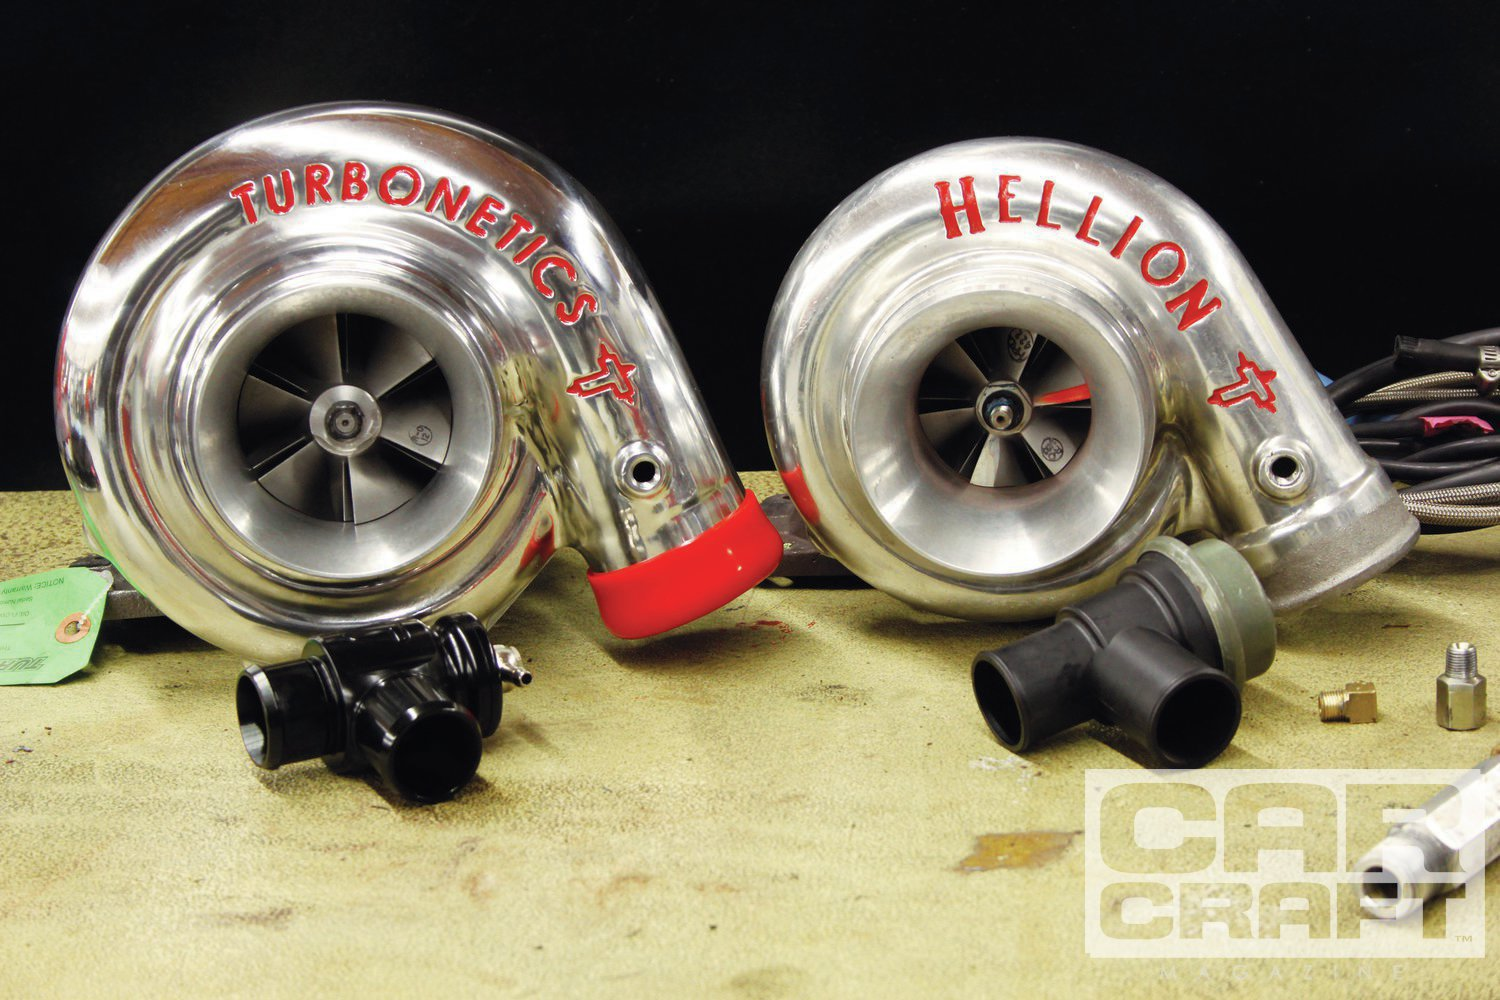 Larger engines require more air, simple as that. The upgrade for the original 61mm turbo is this 76mm wheel from Turbonetics. It has a ball bearing, 0.96 A/R ratio, and a T4 flange. We upgraded the blow-off valve (BOV) with a compact version from Turbosmart. In the past, we've had problems with small BOVs failing to vent boost on decel and blowing off the intake piping.